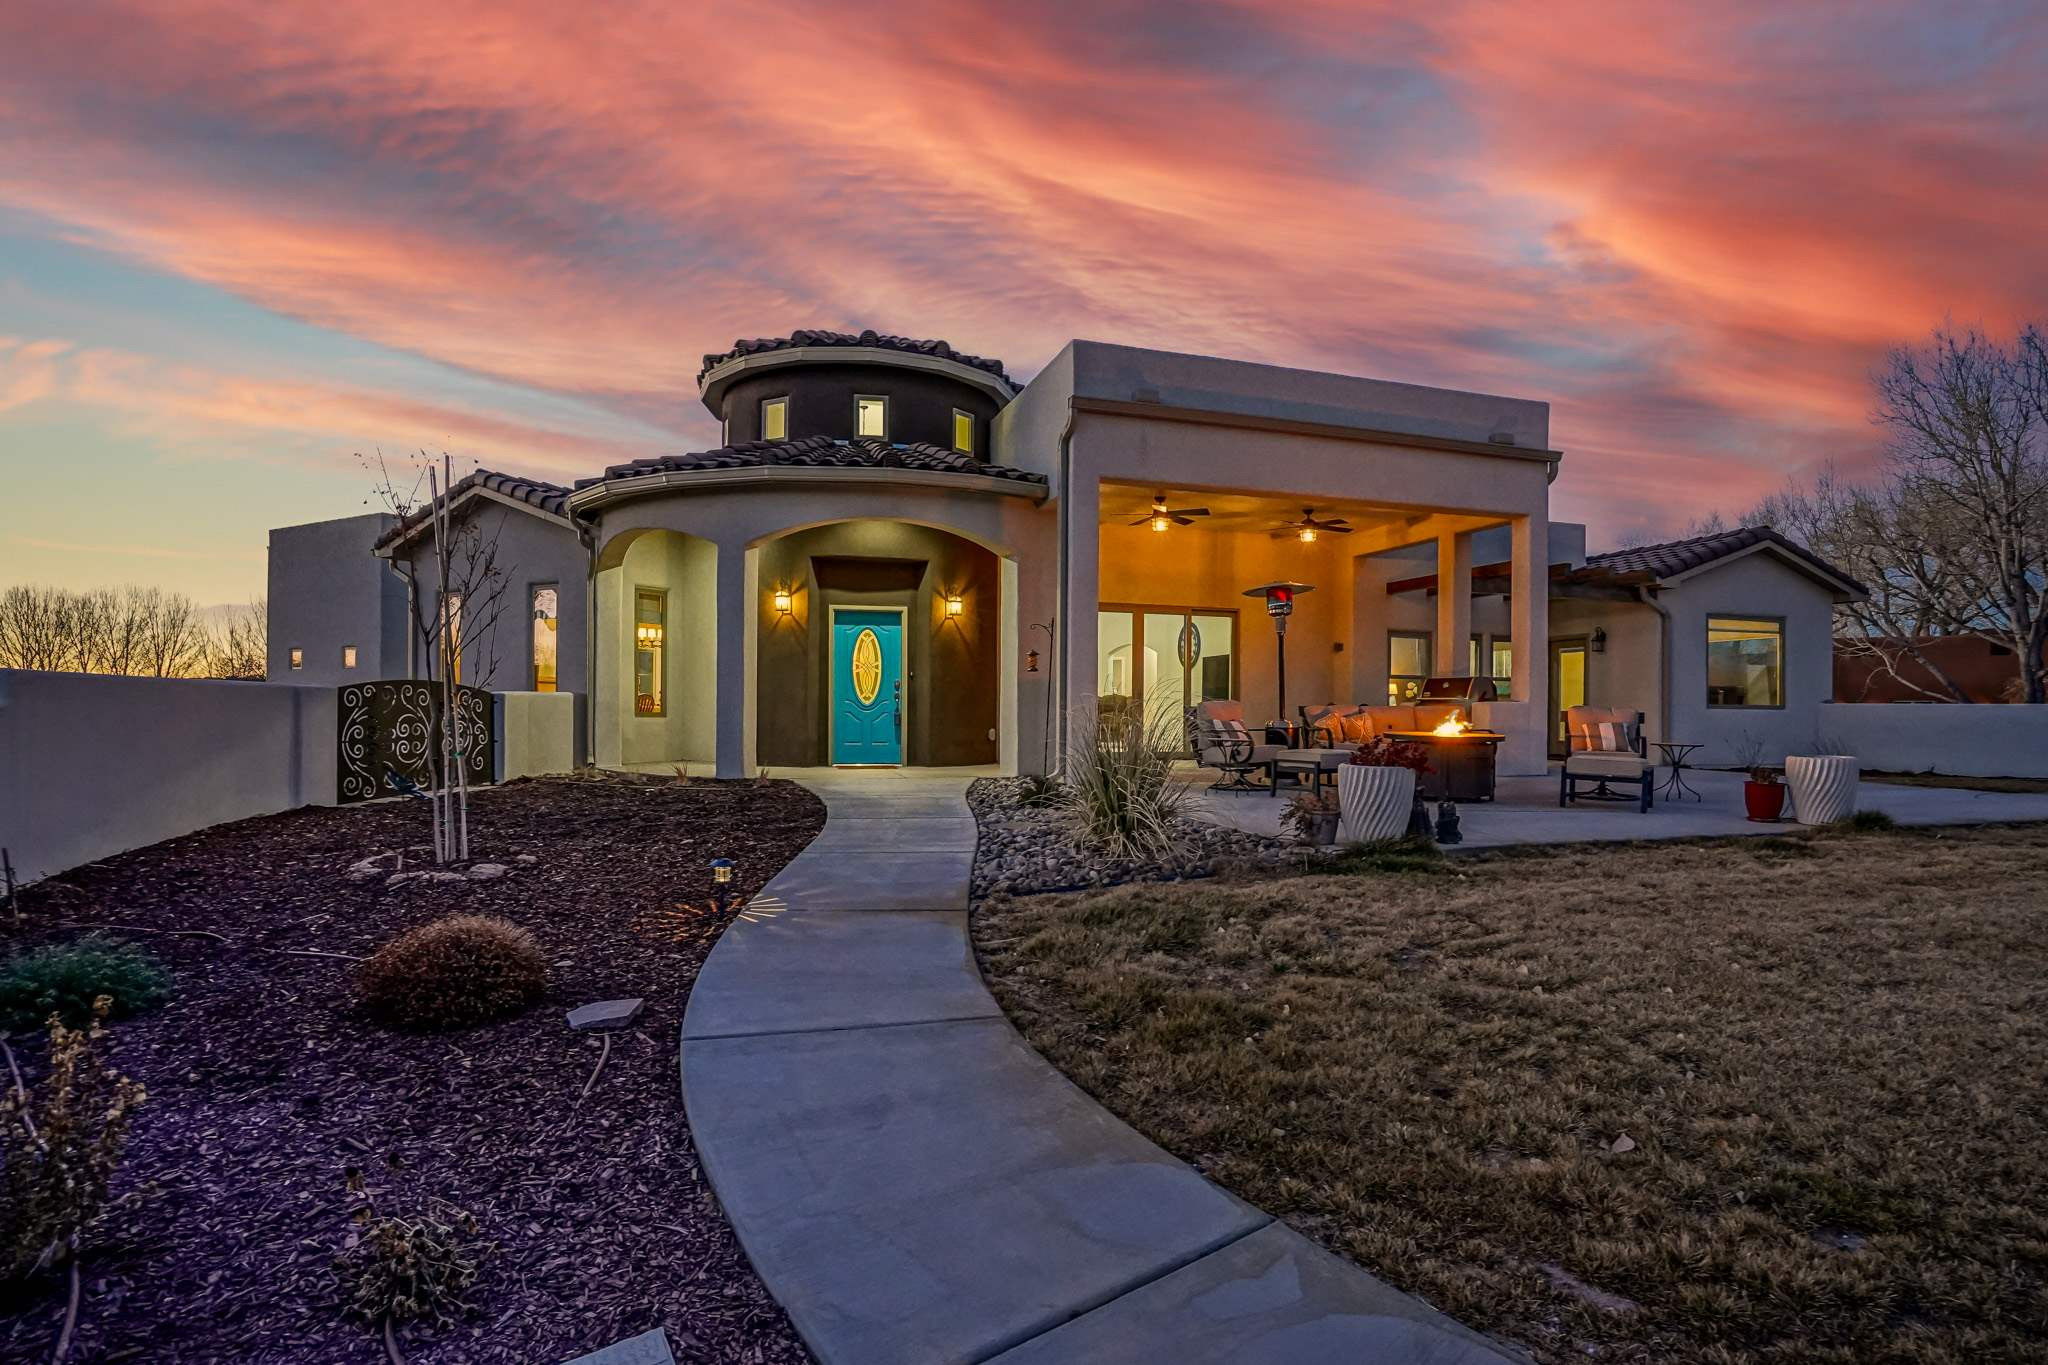 1st Showings Sat & Sun! Welcome Home to the pristine gated Bosque Encantada neighborhood nestled along the Rio Grande River; deeded river access; breathtaking Sandia Mountain views! New in 2020, custom one level open floor plan. Exquisite dream kitchen; induction cooktop, walk-in pantry, beamed ceiling, bake station, reverse osmosis, custom rollouts, all open to dining and great room w/ stone fireplace. Owners suite in separate wing; attached office, luxurious bath, double sinks, soaking tub, snail shower, large walk in/thru closet. 2 more ensuite bedrooms w/ walkins plus hobby room w/ lg closet. 40' RV garage 2200 sf of finished garage space. 6 zone radiant warm floor heat plus 2 combo units, instant hot, tankless water heater, whole house fan, private well & city water. Walking trails.